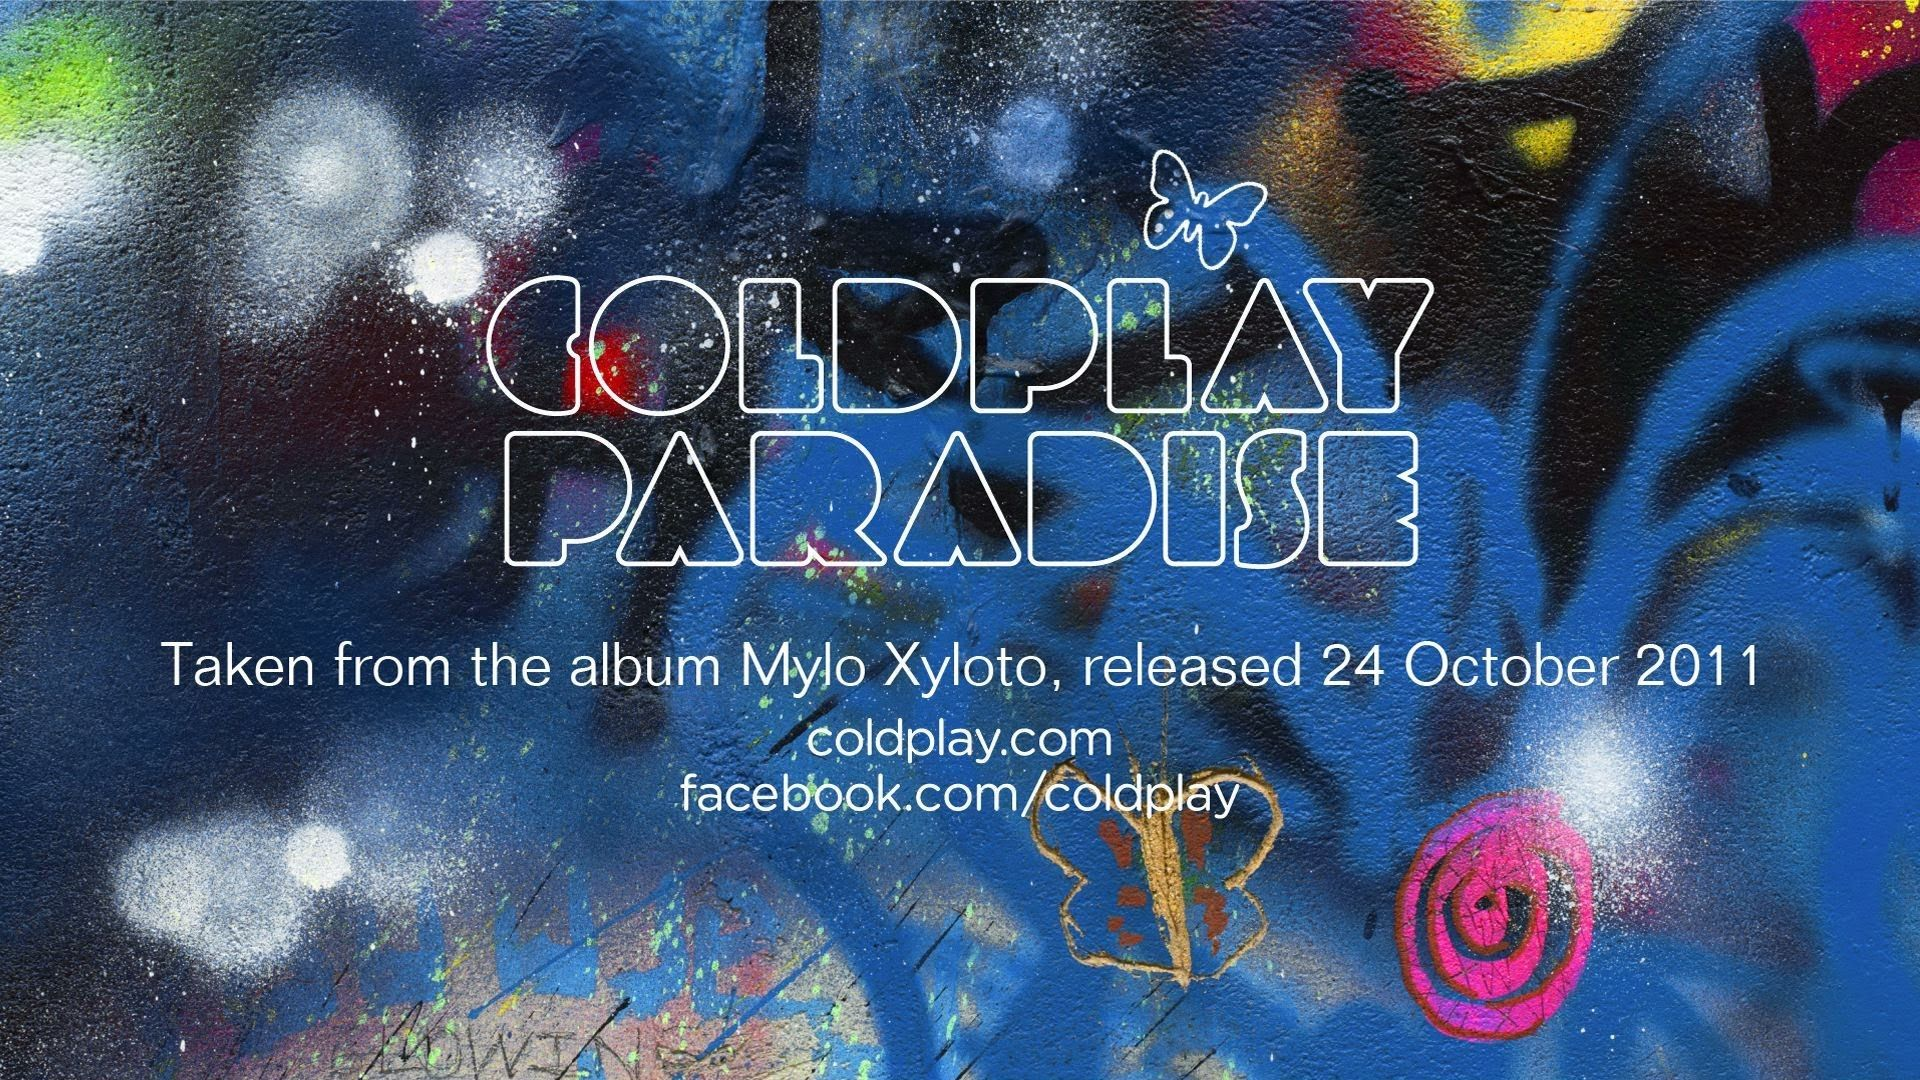 Coldplay Paradise Official Coldplay Paradise Coldplay Music Love